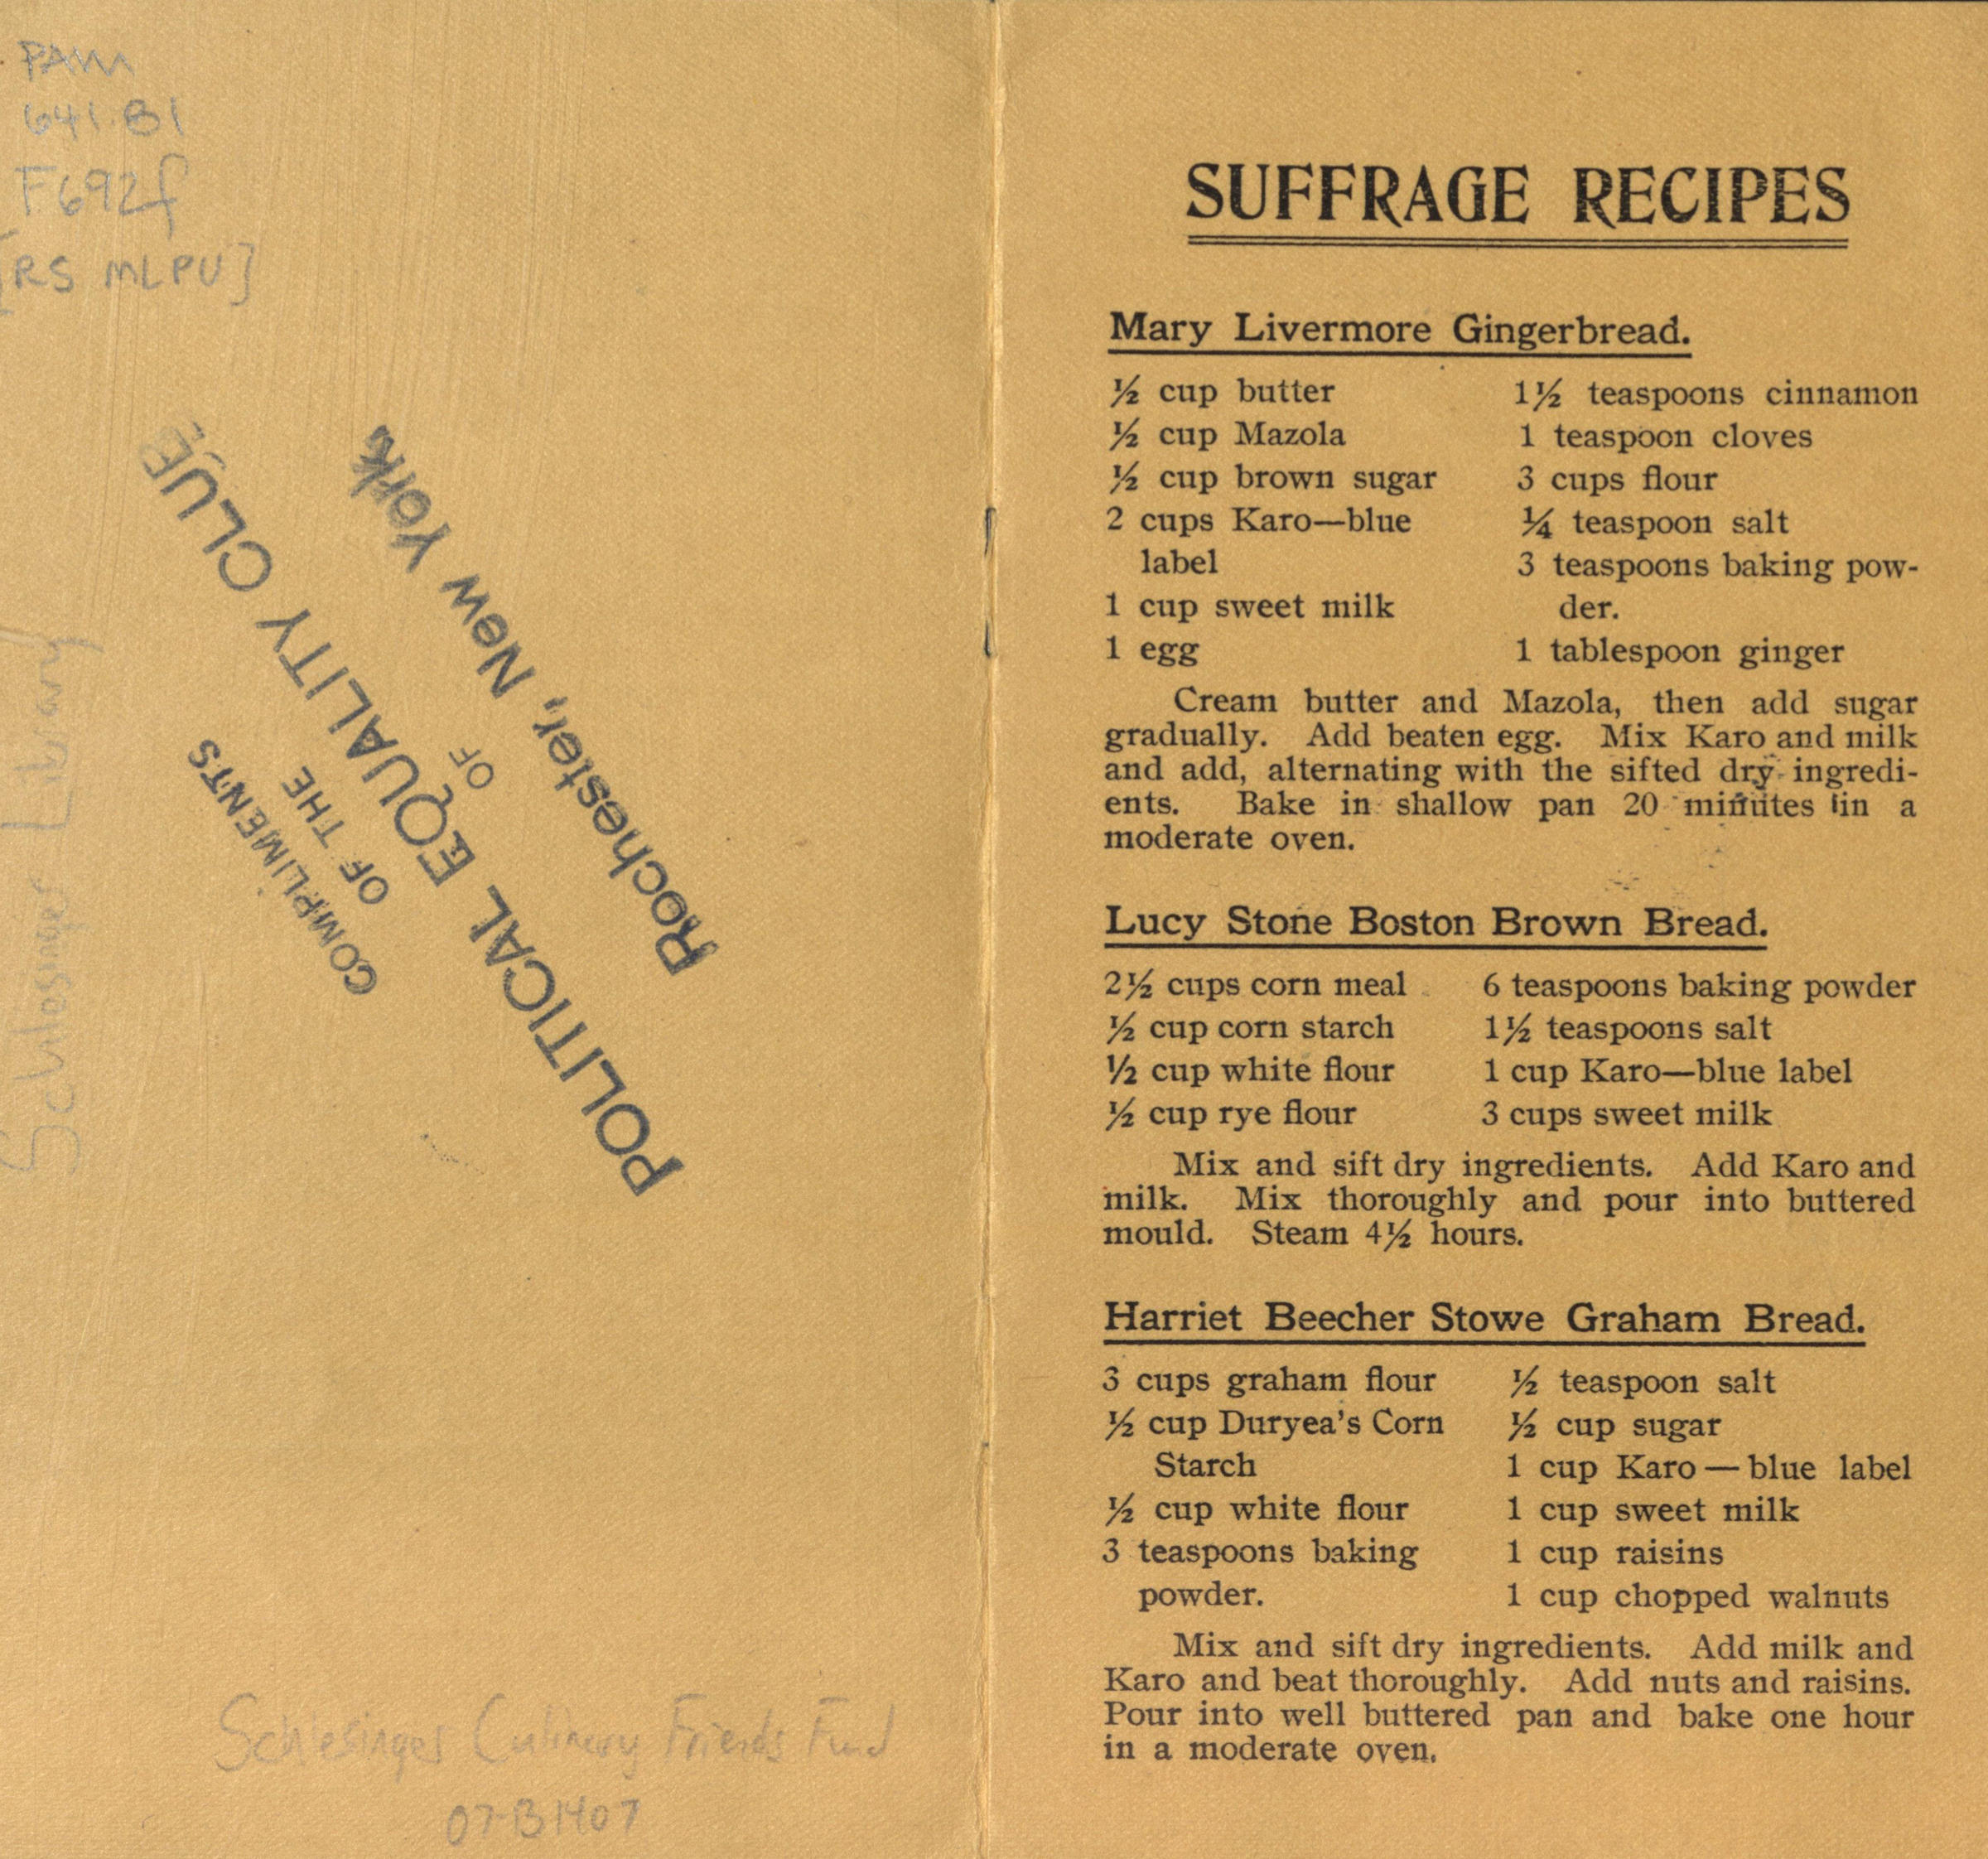 how suffragists used cookbooks as a recipe for subversion kuow